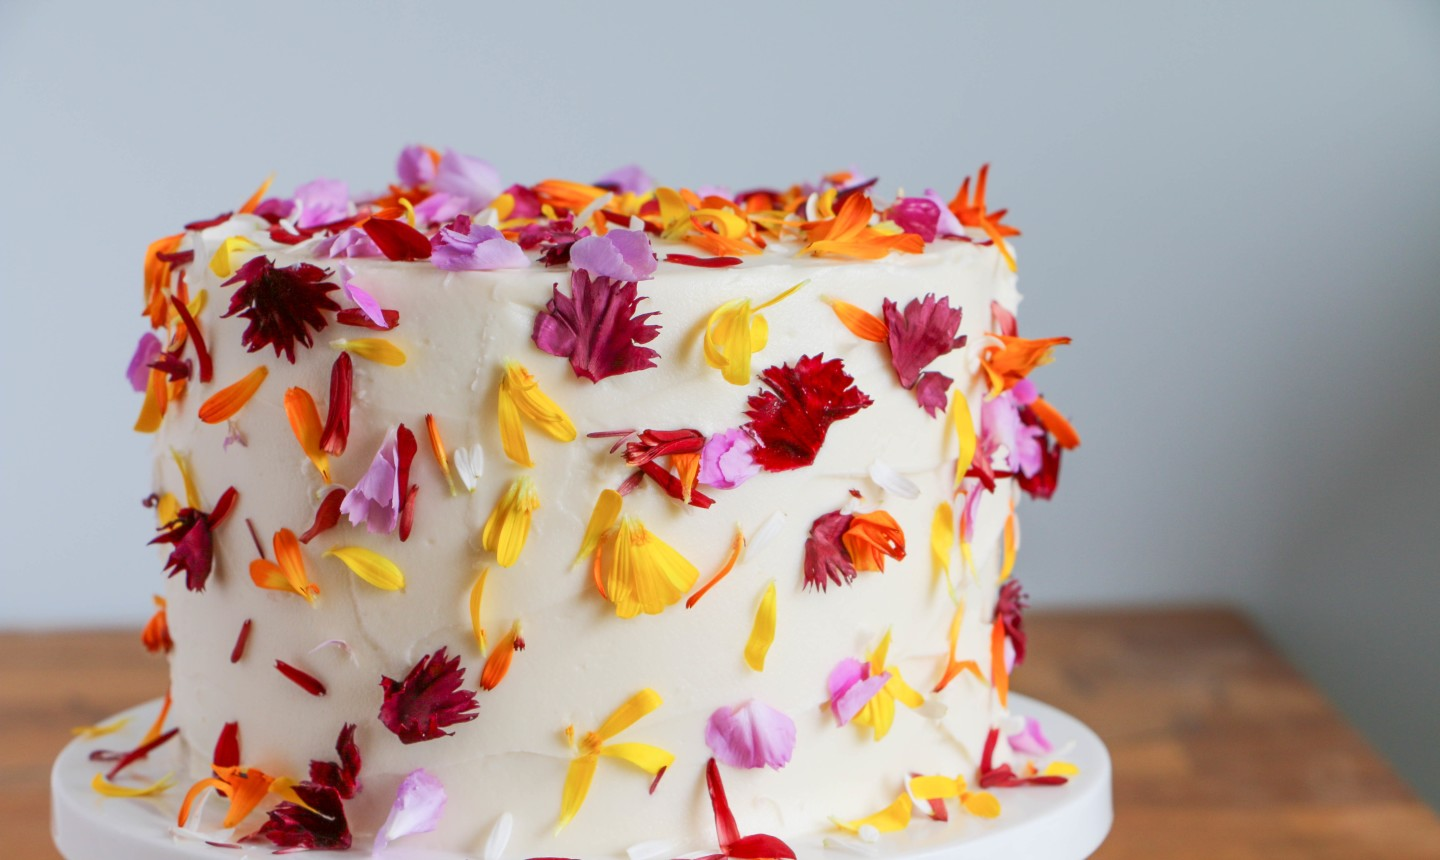 white cake covered in flower petals